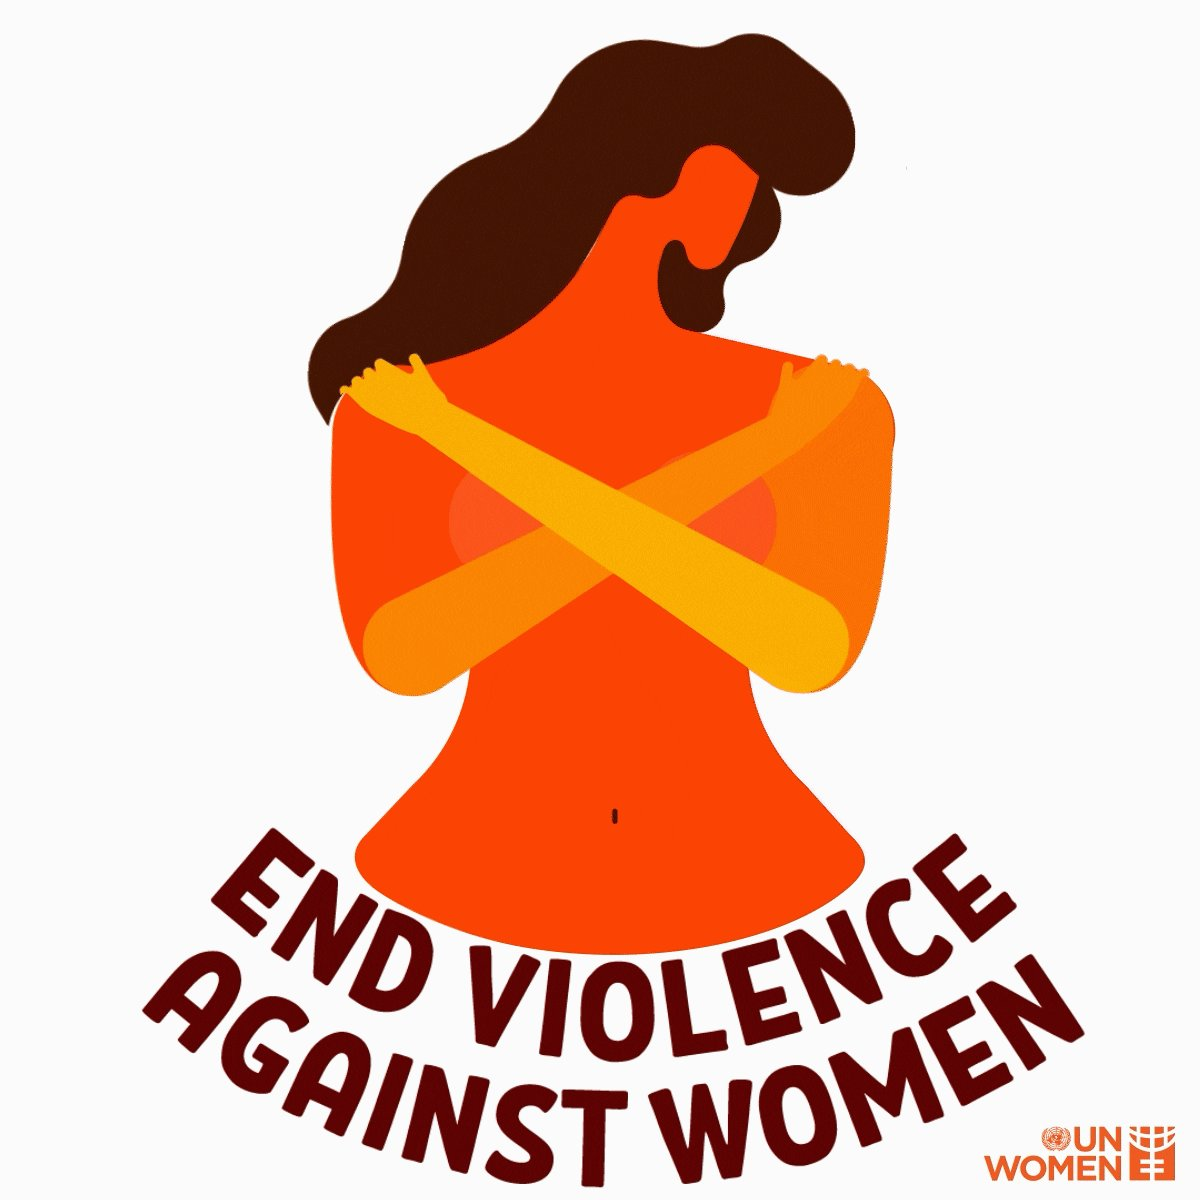 Violence against women and girls manifests itself in many different forms, but it is NOT inevitable.  Find out how you can do your part to end this pandemic during #16Days of Activism and join #GenerationEquality today:   #orangetheworld